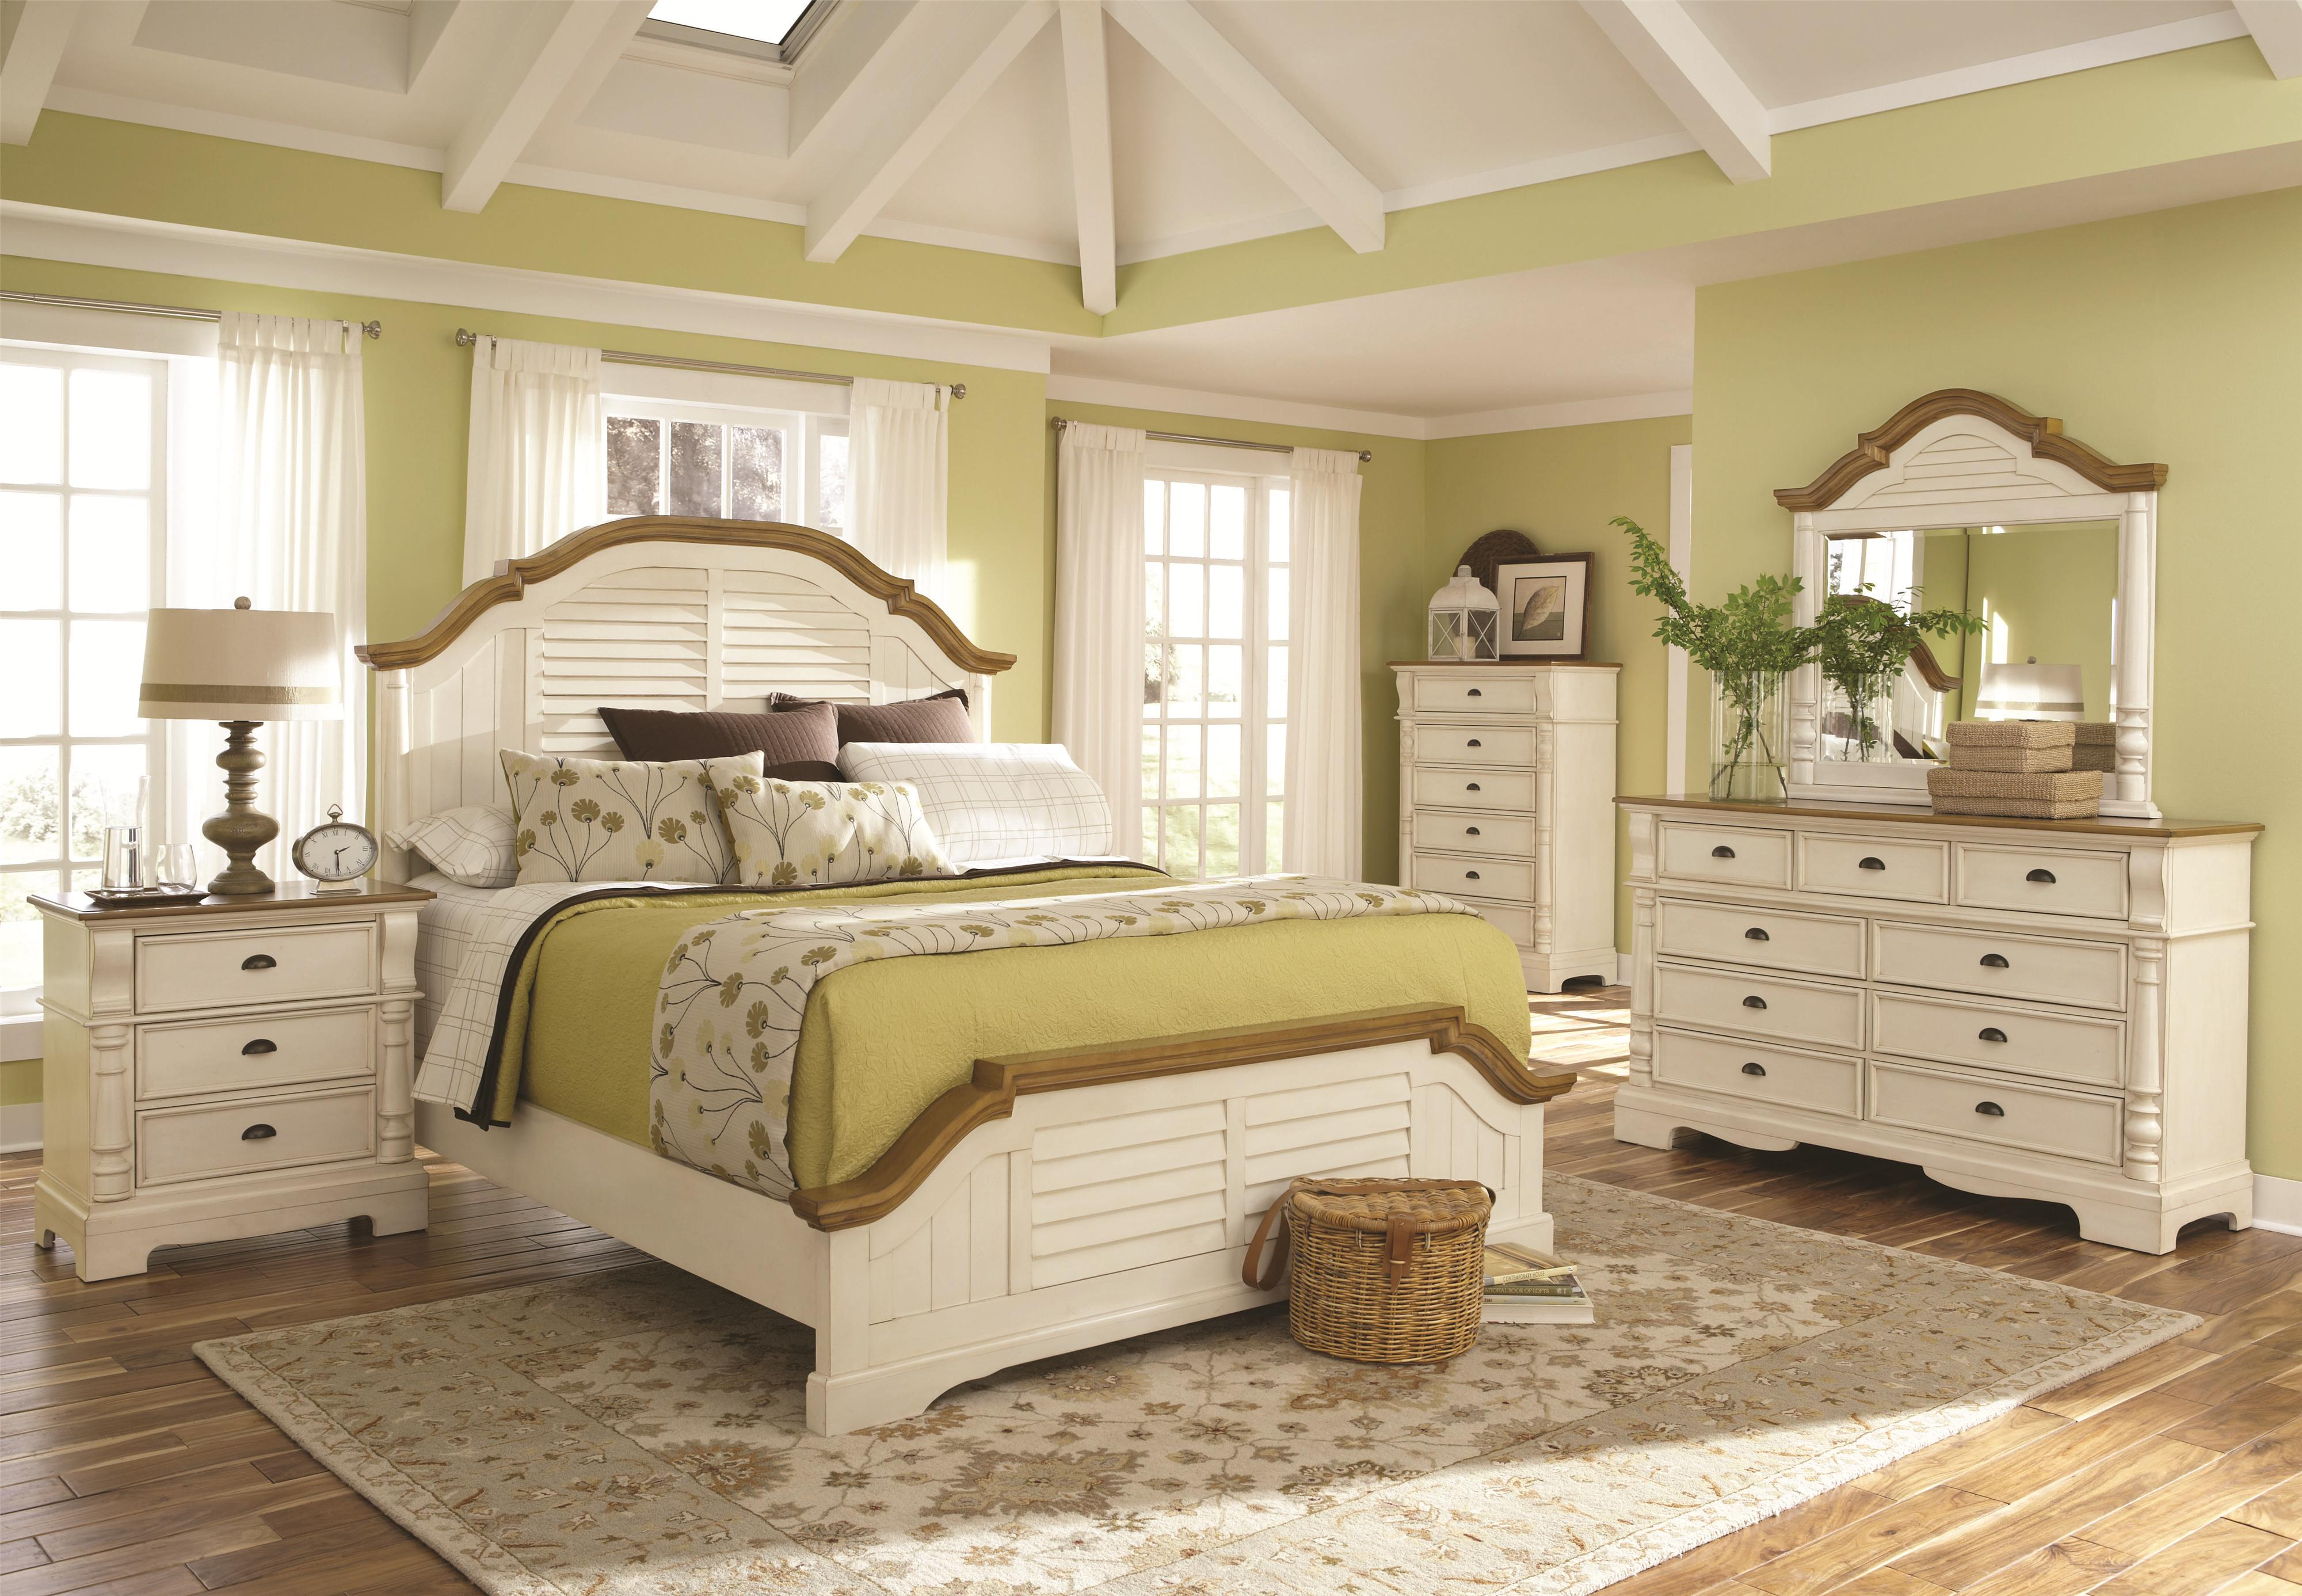 Coaster Oleta King Bedroom Group - Item Number: 20288 K Bedroom Group 1